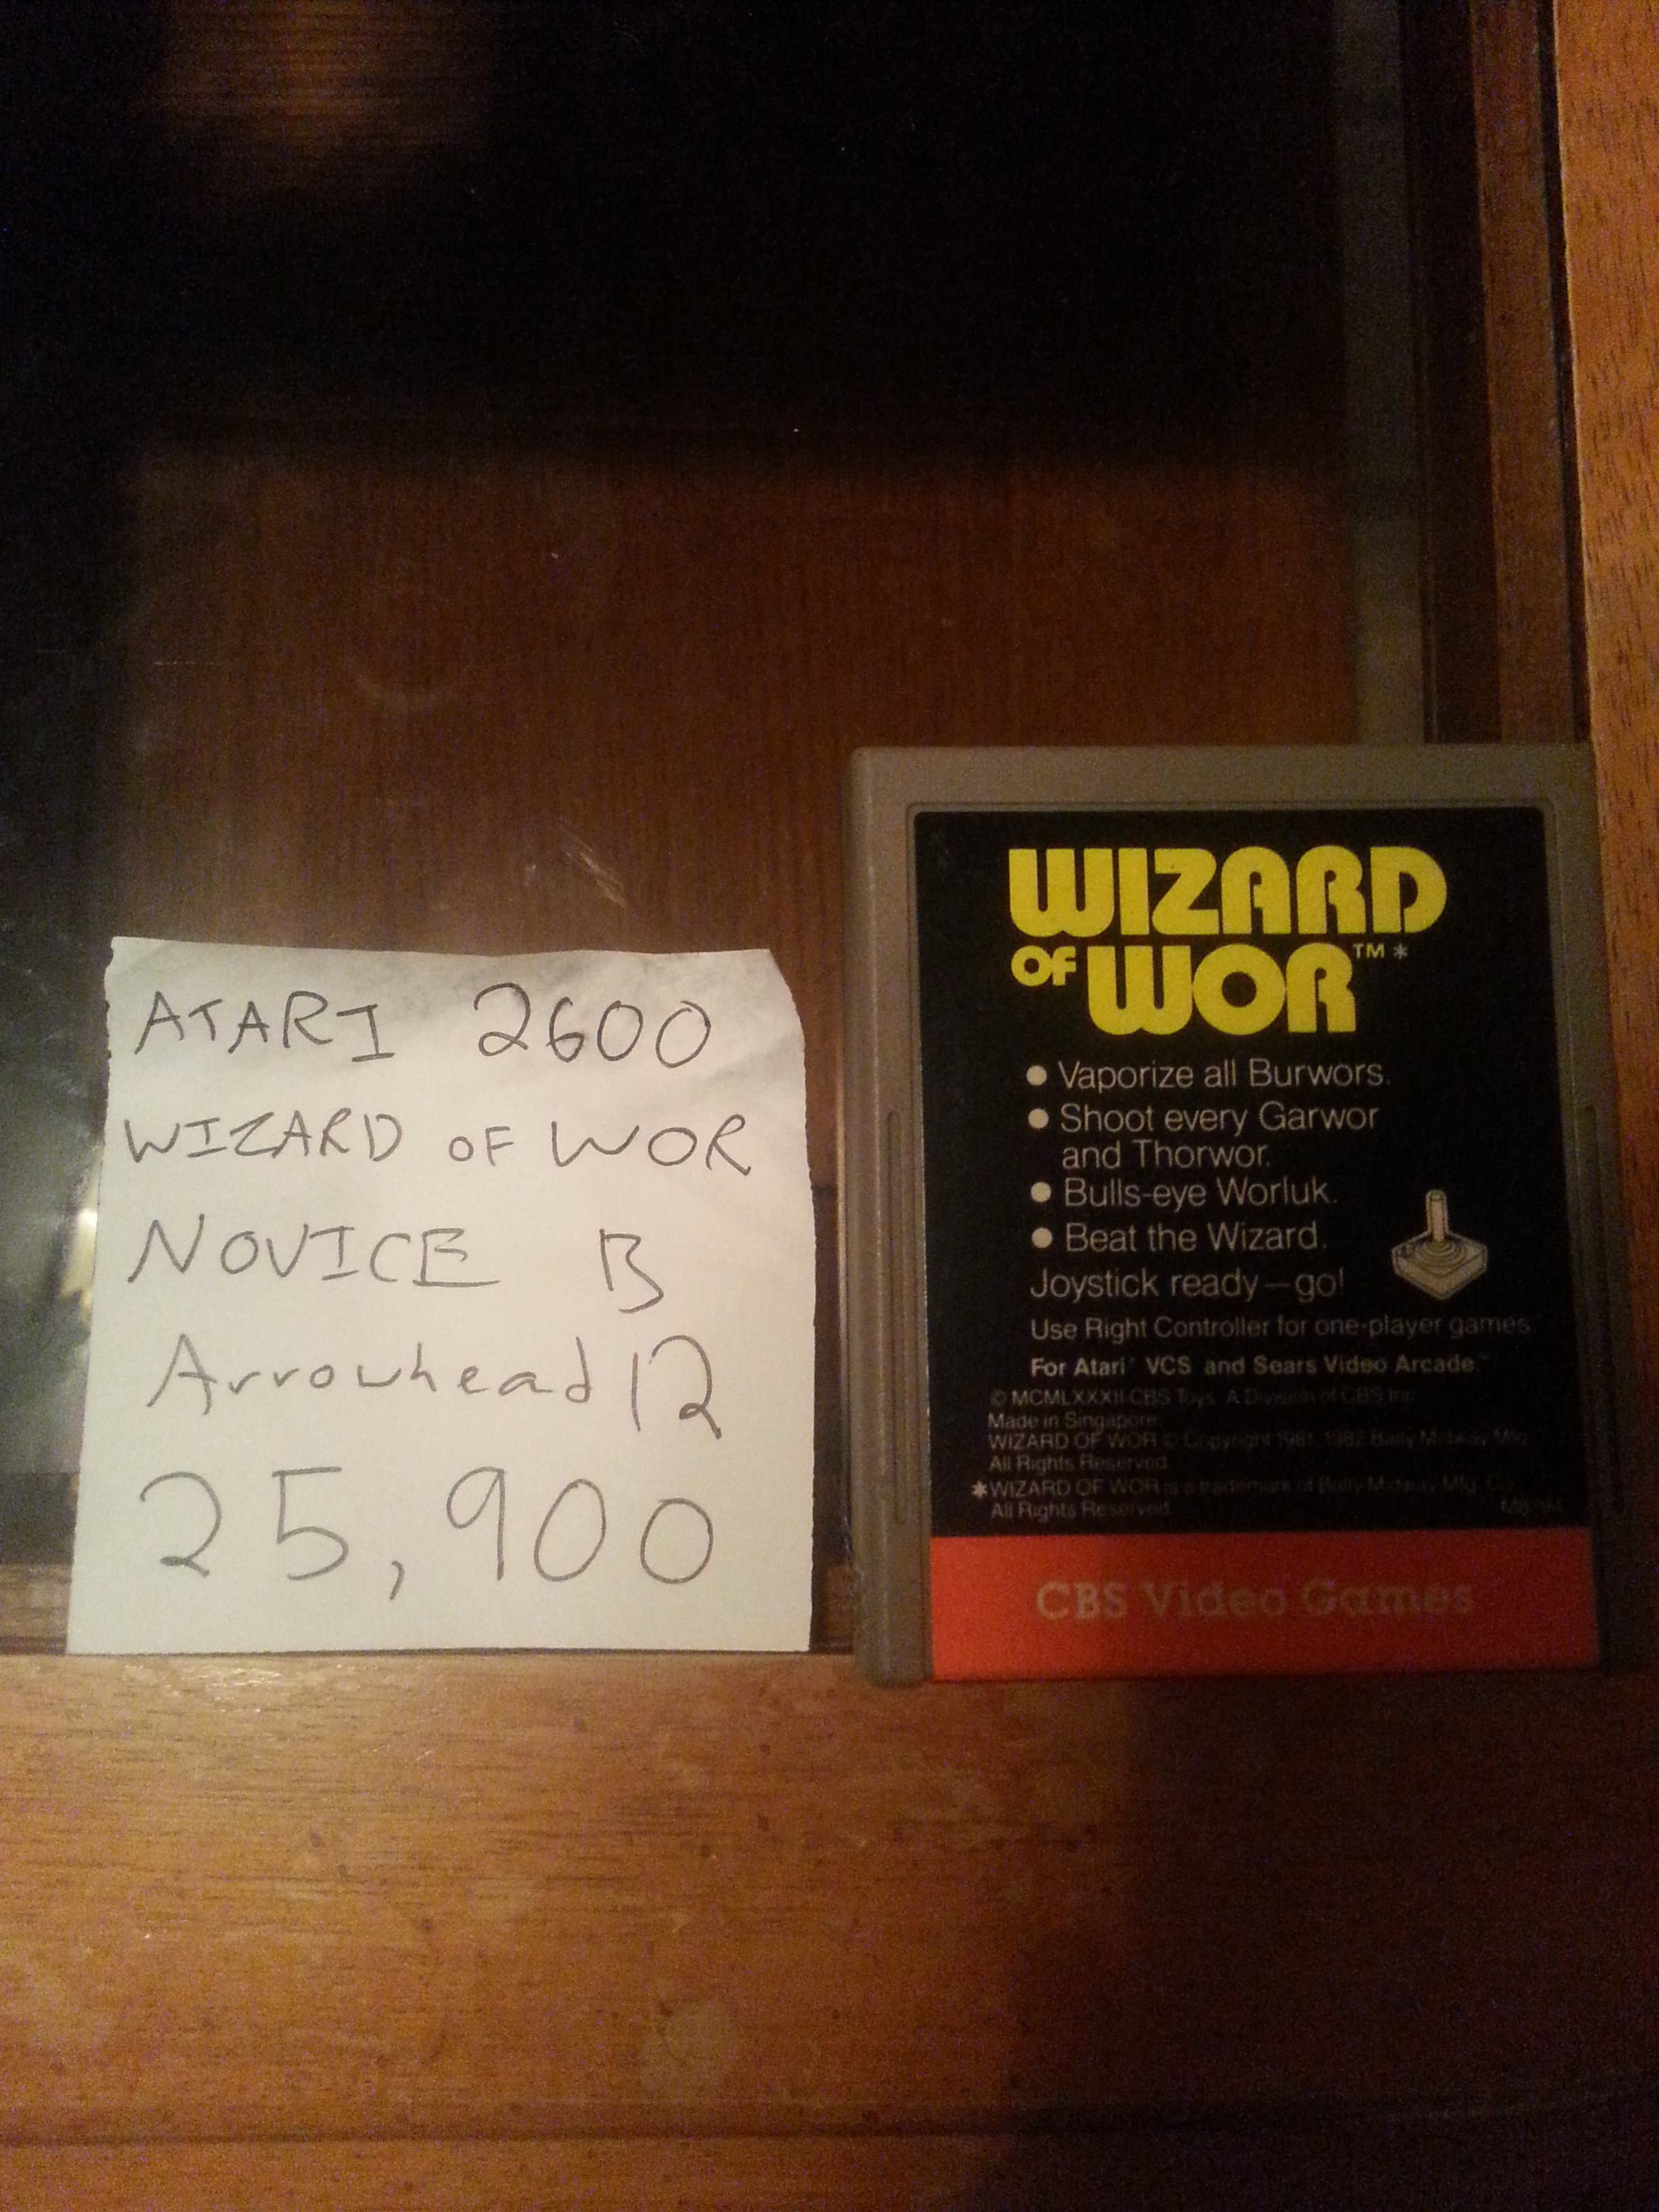 Arrowhead12: Wizard of Wor (Atari 2600 Novice/B) 25,900 points on 2018-09-29 17:04:26